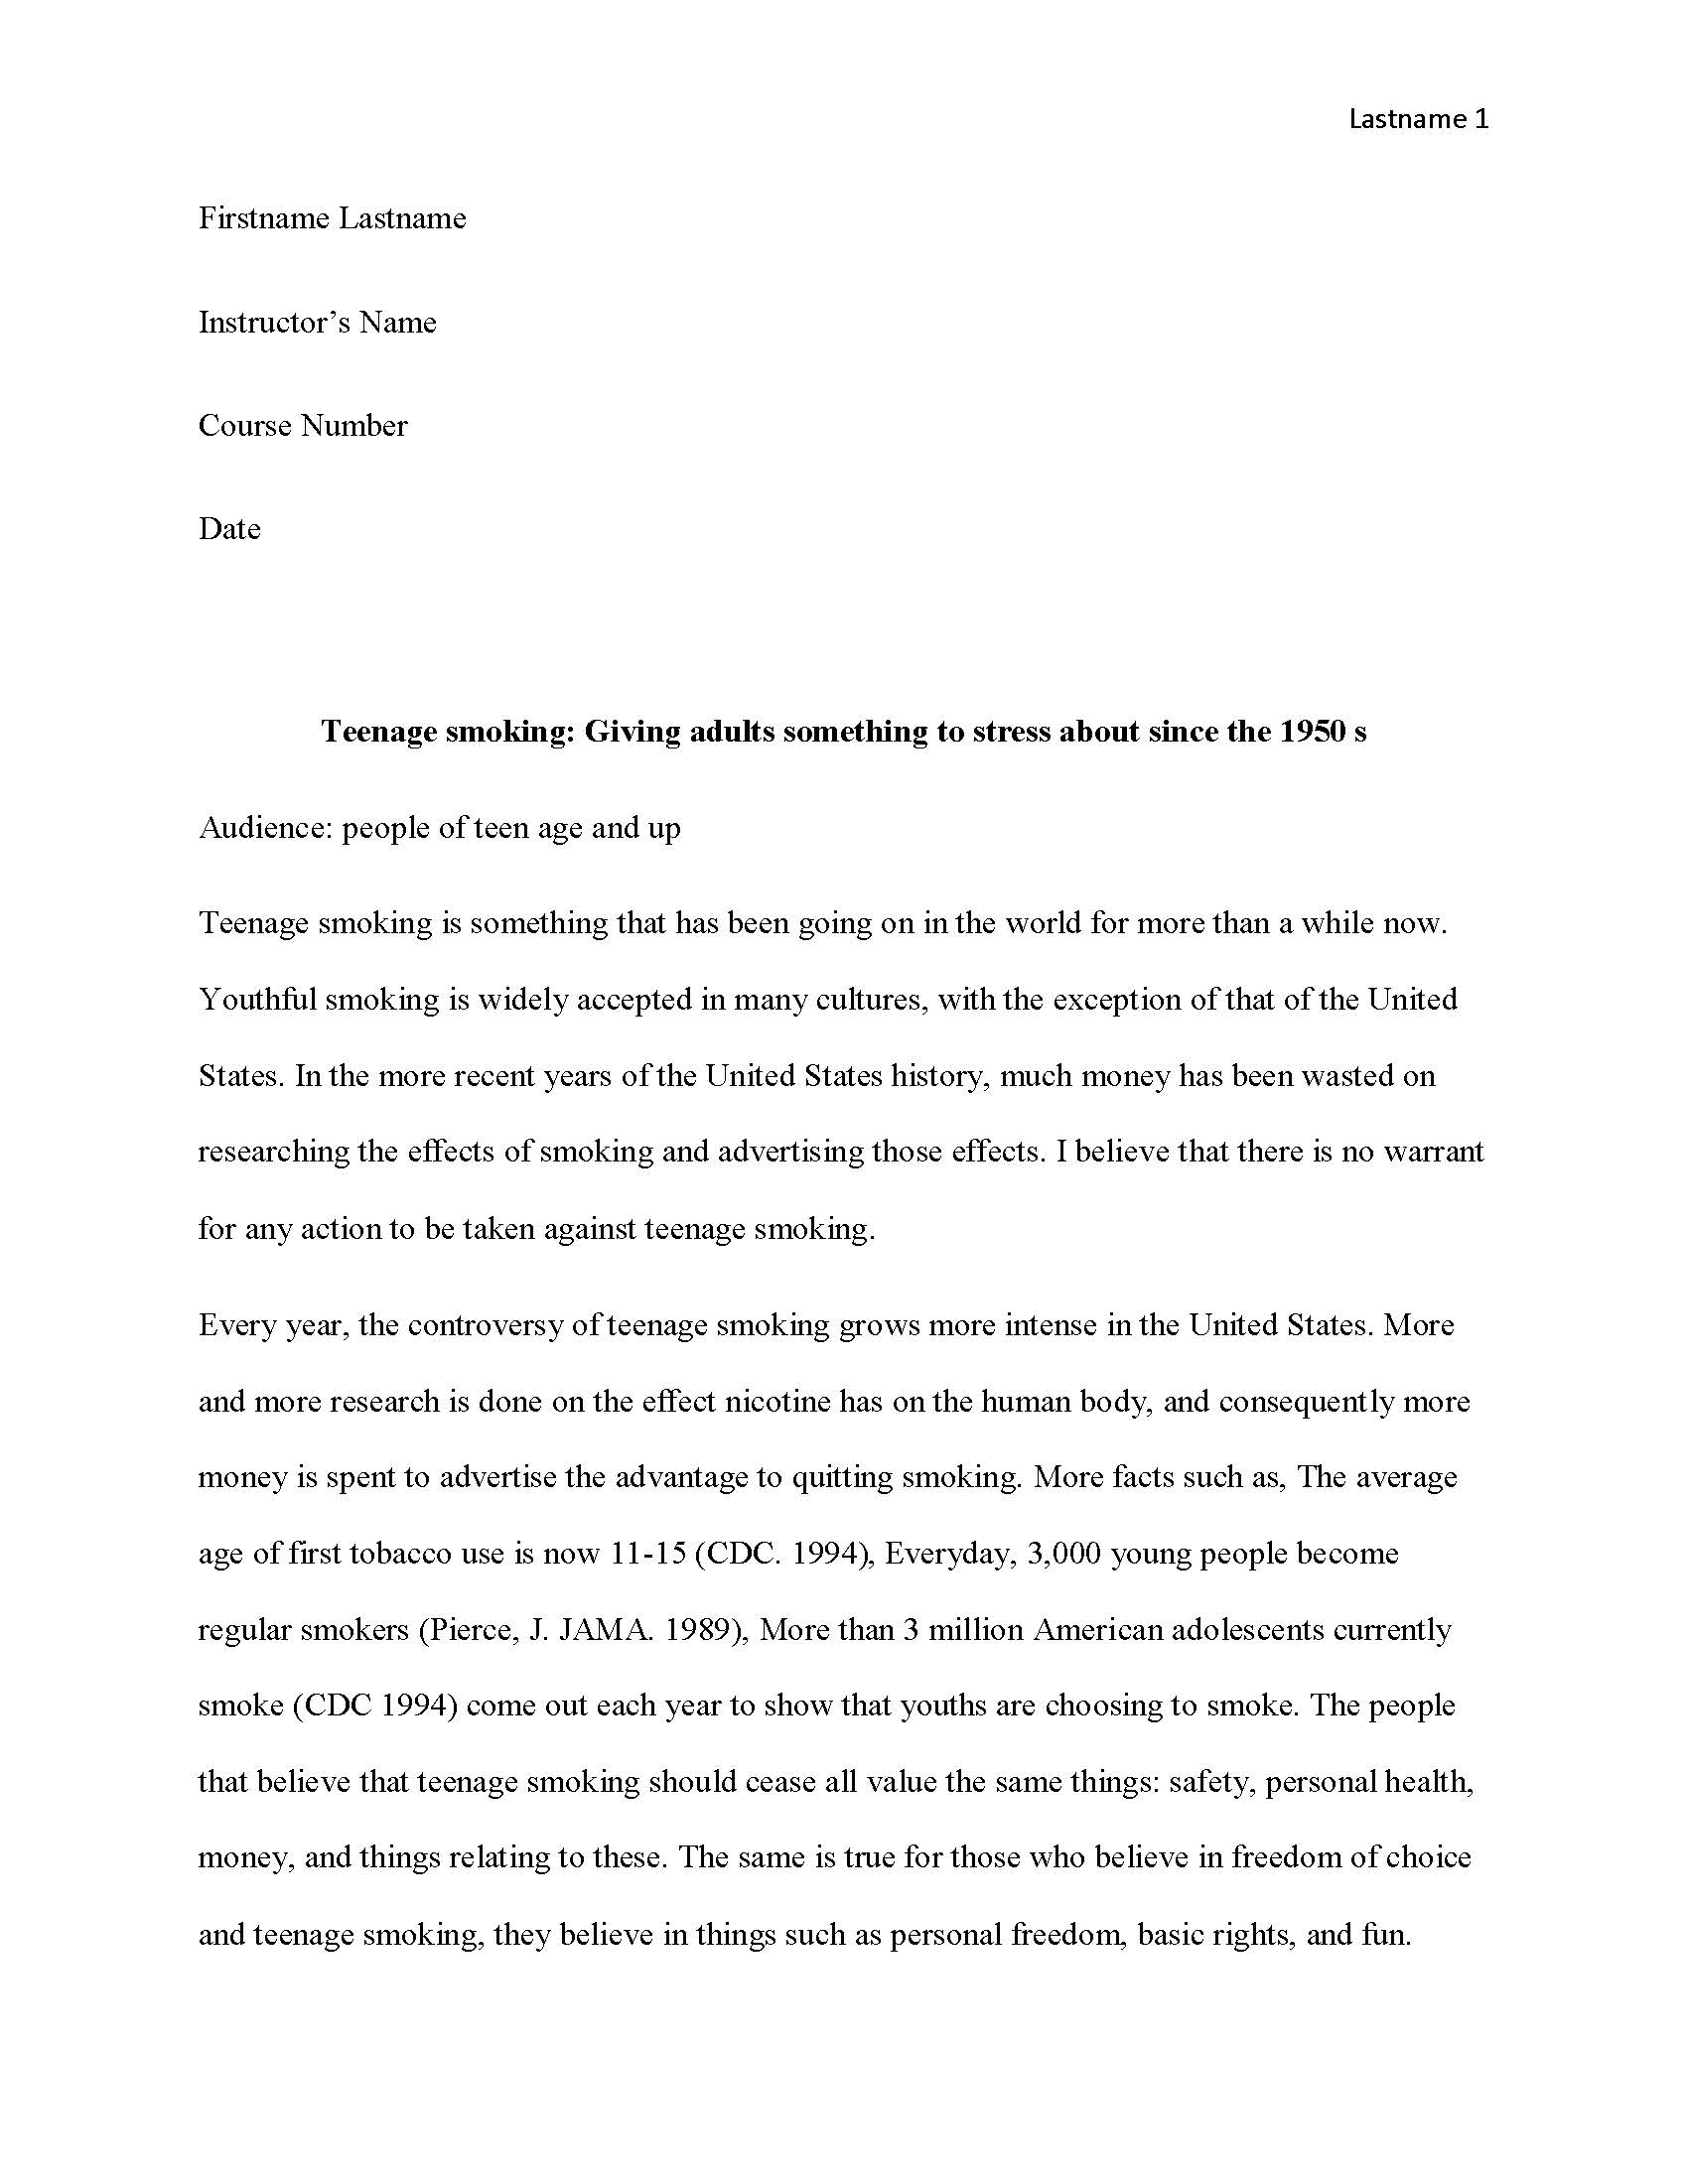 Poetry Essay Example How To Write A Poetry Paper Interpretation